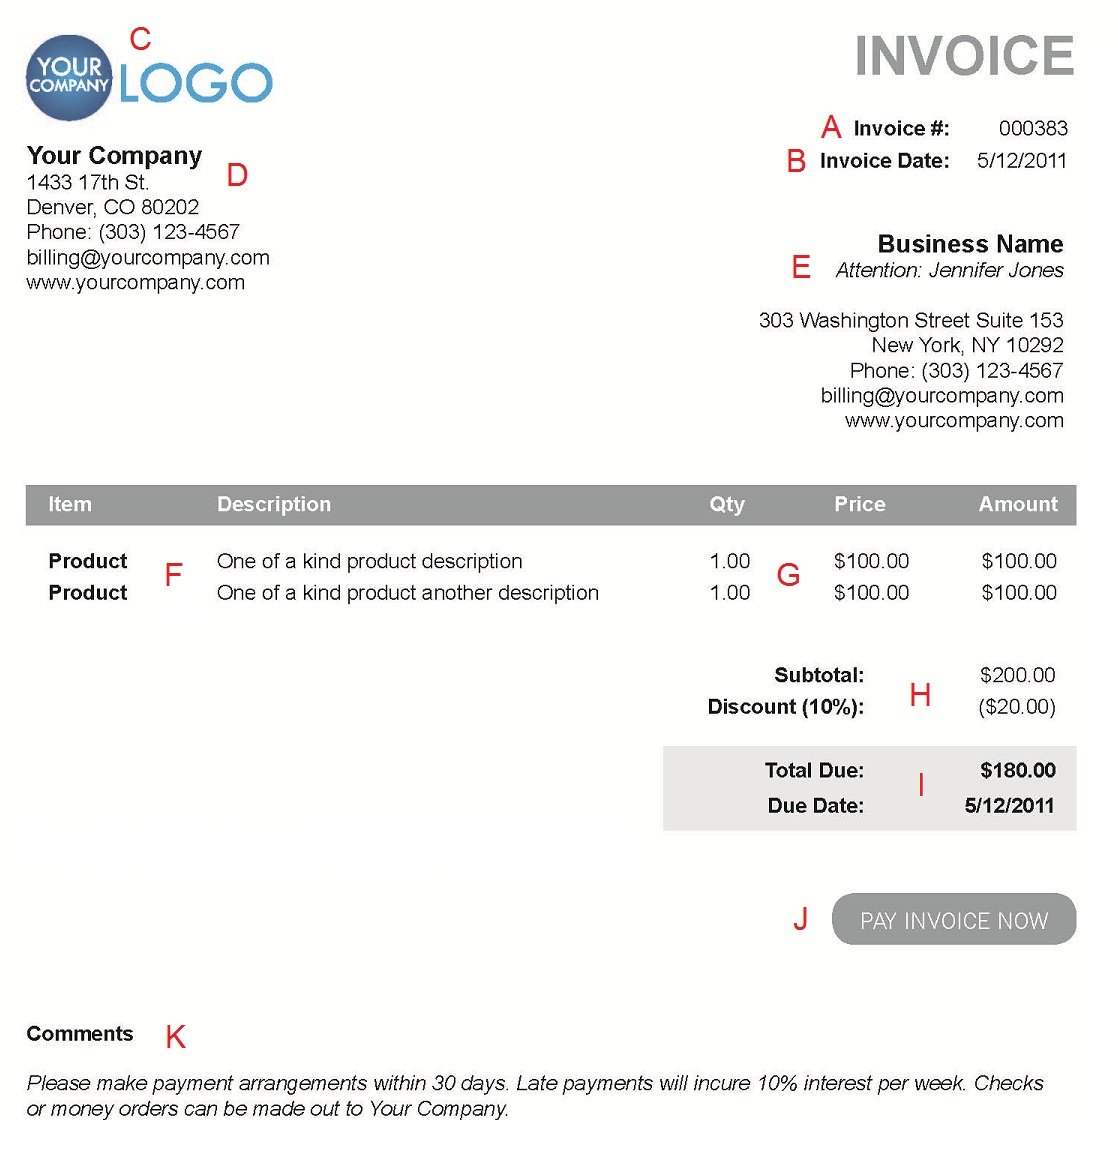 Opposenewapstandardsus  Ravishing The  Different Sections Of An Electronic Payment Invoice With Handsome A  With Nice Garage Invoice Template Also Sample Of A Commercial Invoice In Addition Invoice Receipt Sample And Rogers Invoice As Well As Ariba Invoice Management Additionally Microsoft Invoice Template Uk From Paysimplecom With Opposenewapstandardsus  Handsome The  Different Sections Of An Electronic Payment Invoice With Nice A  And Ravishing Garage Invoice Template Also Sample Of A Commercial Invoice In Addition Invoice Receipt Sample From Paysimplecom